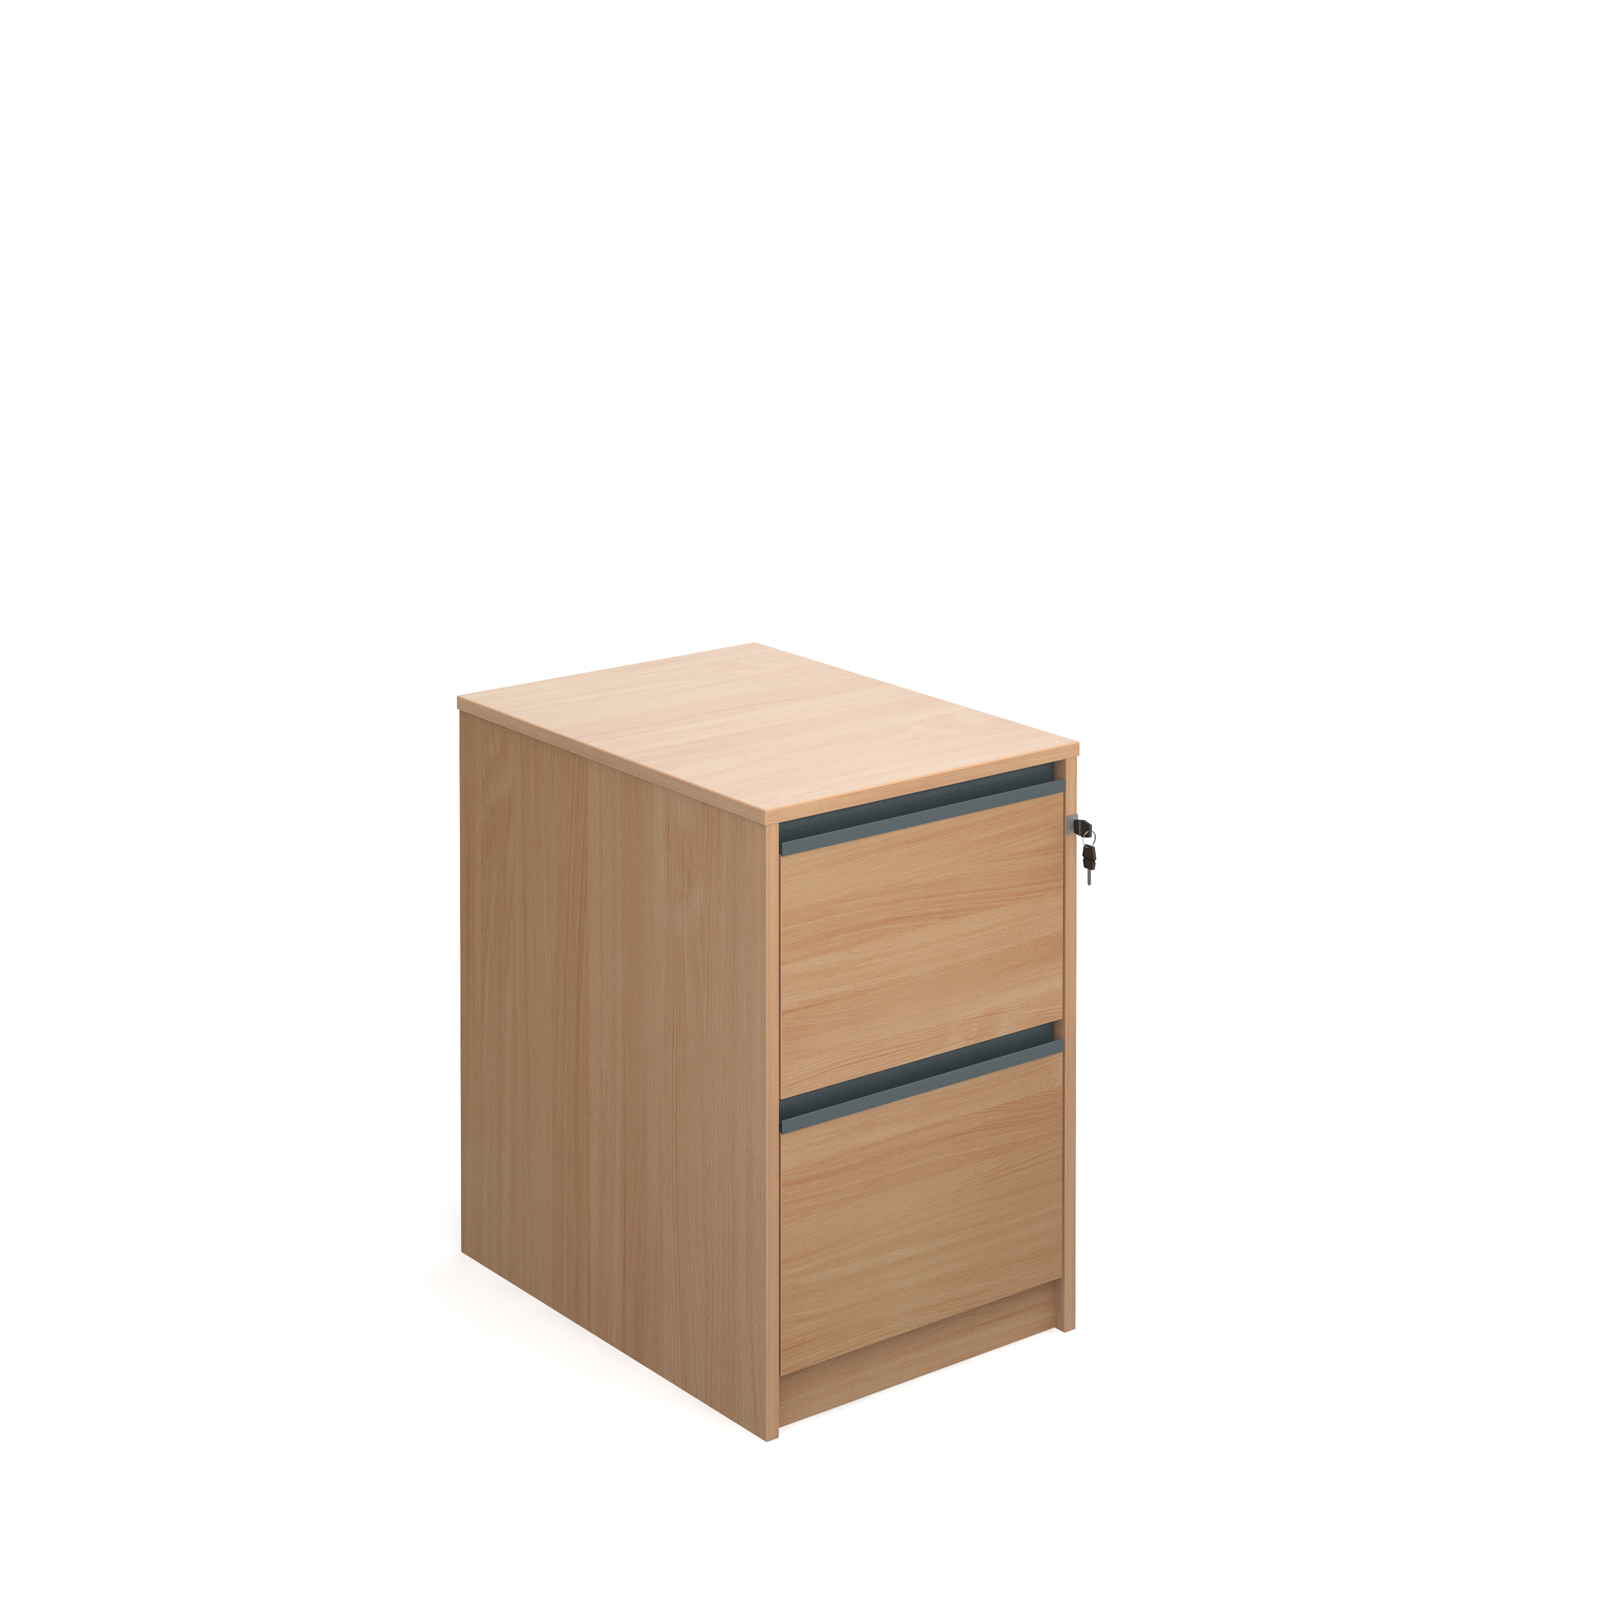 Filing cabinet with finger pull handles